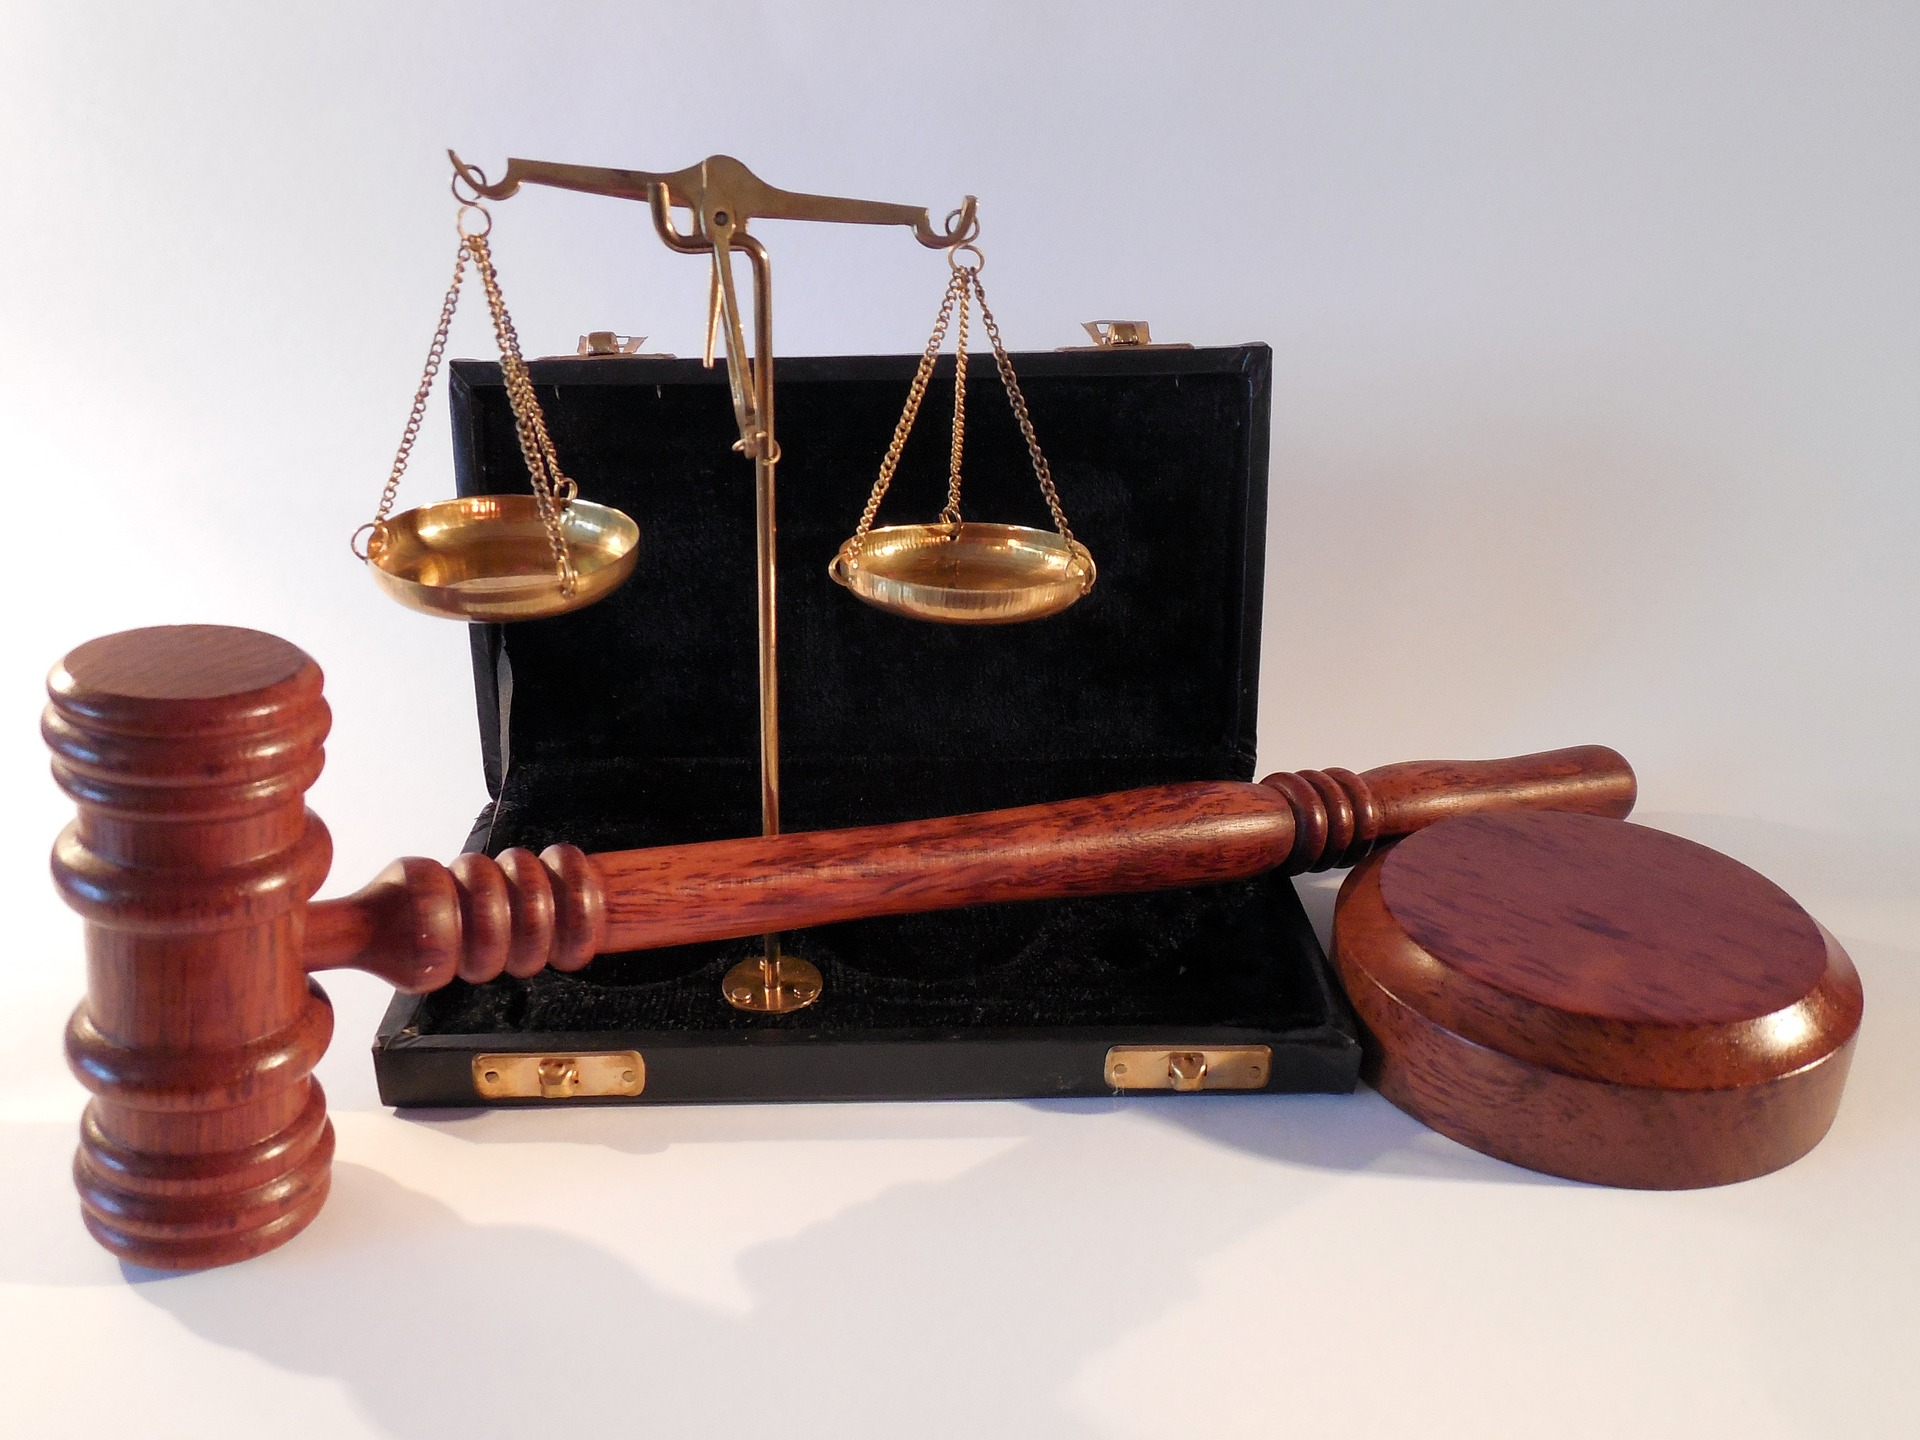 Benefits of the Intellectual Property Enterprise Court